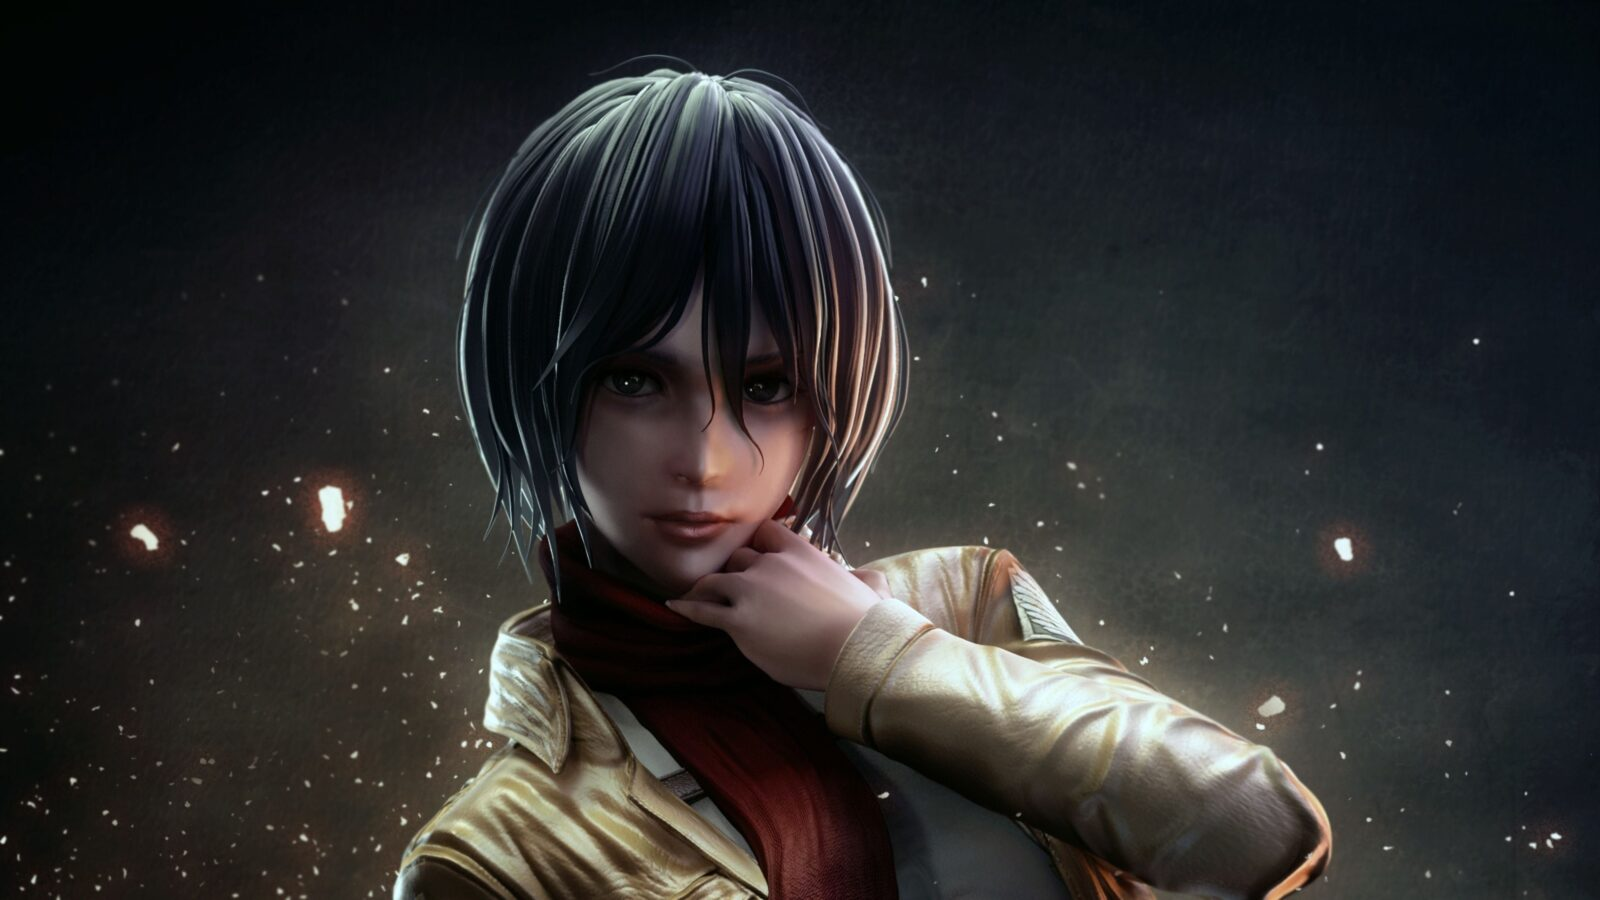 4k Ultrahd Mikasa Ackerman Attack On Titan Wallpaper Hd